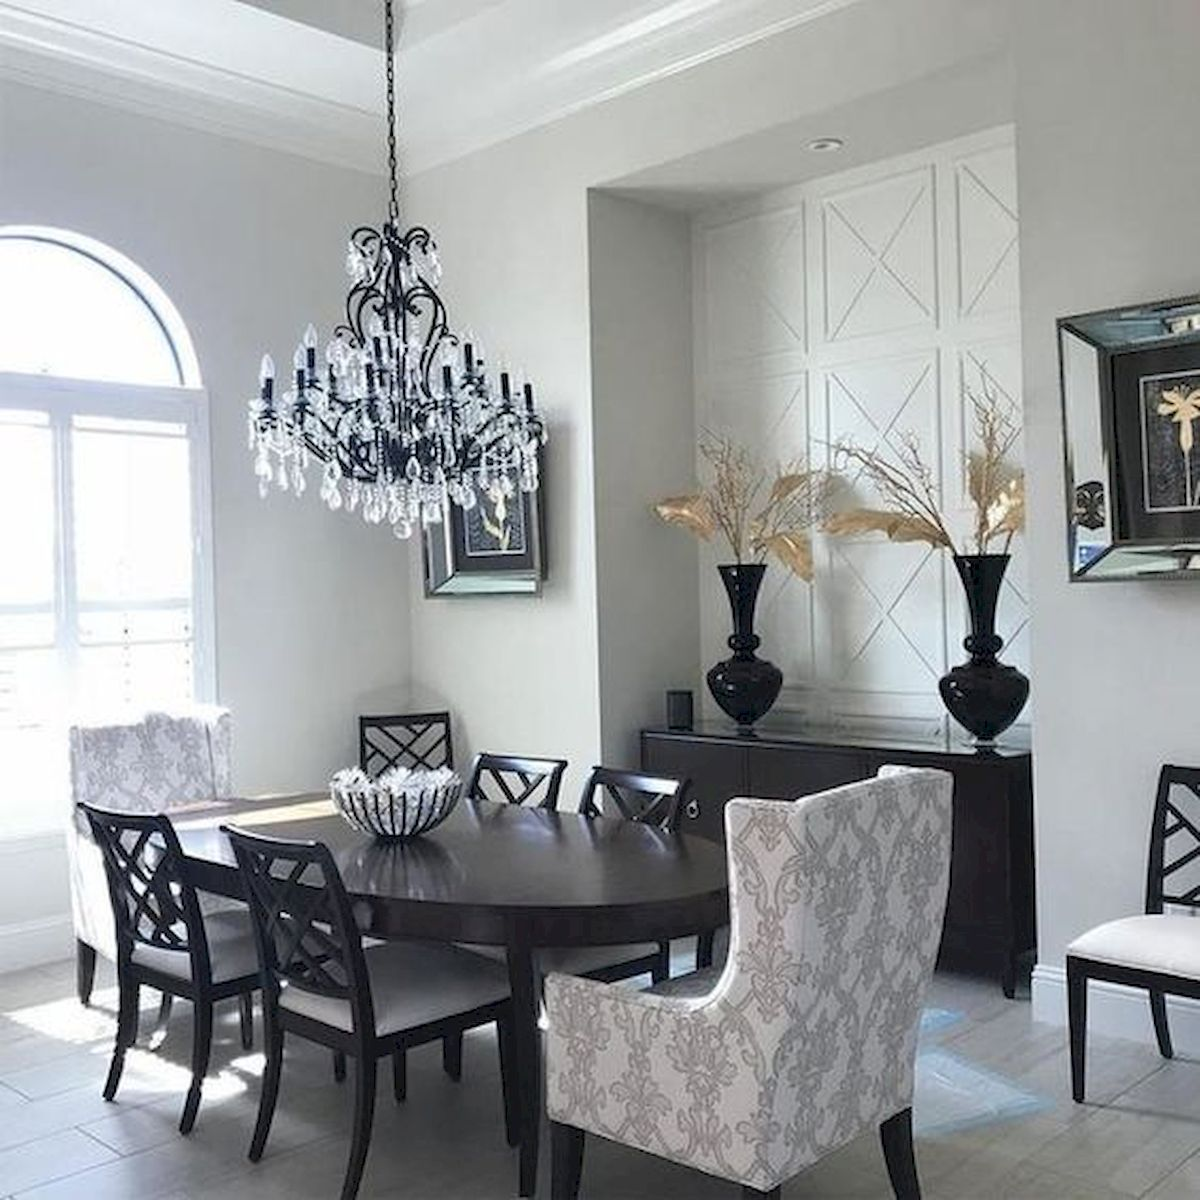 80 Elegant Modern Dining Room Design and Decor Ideas (50)